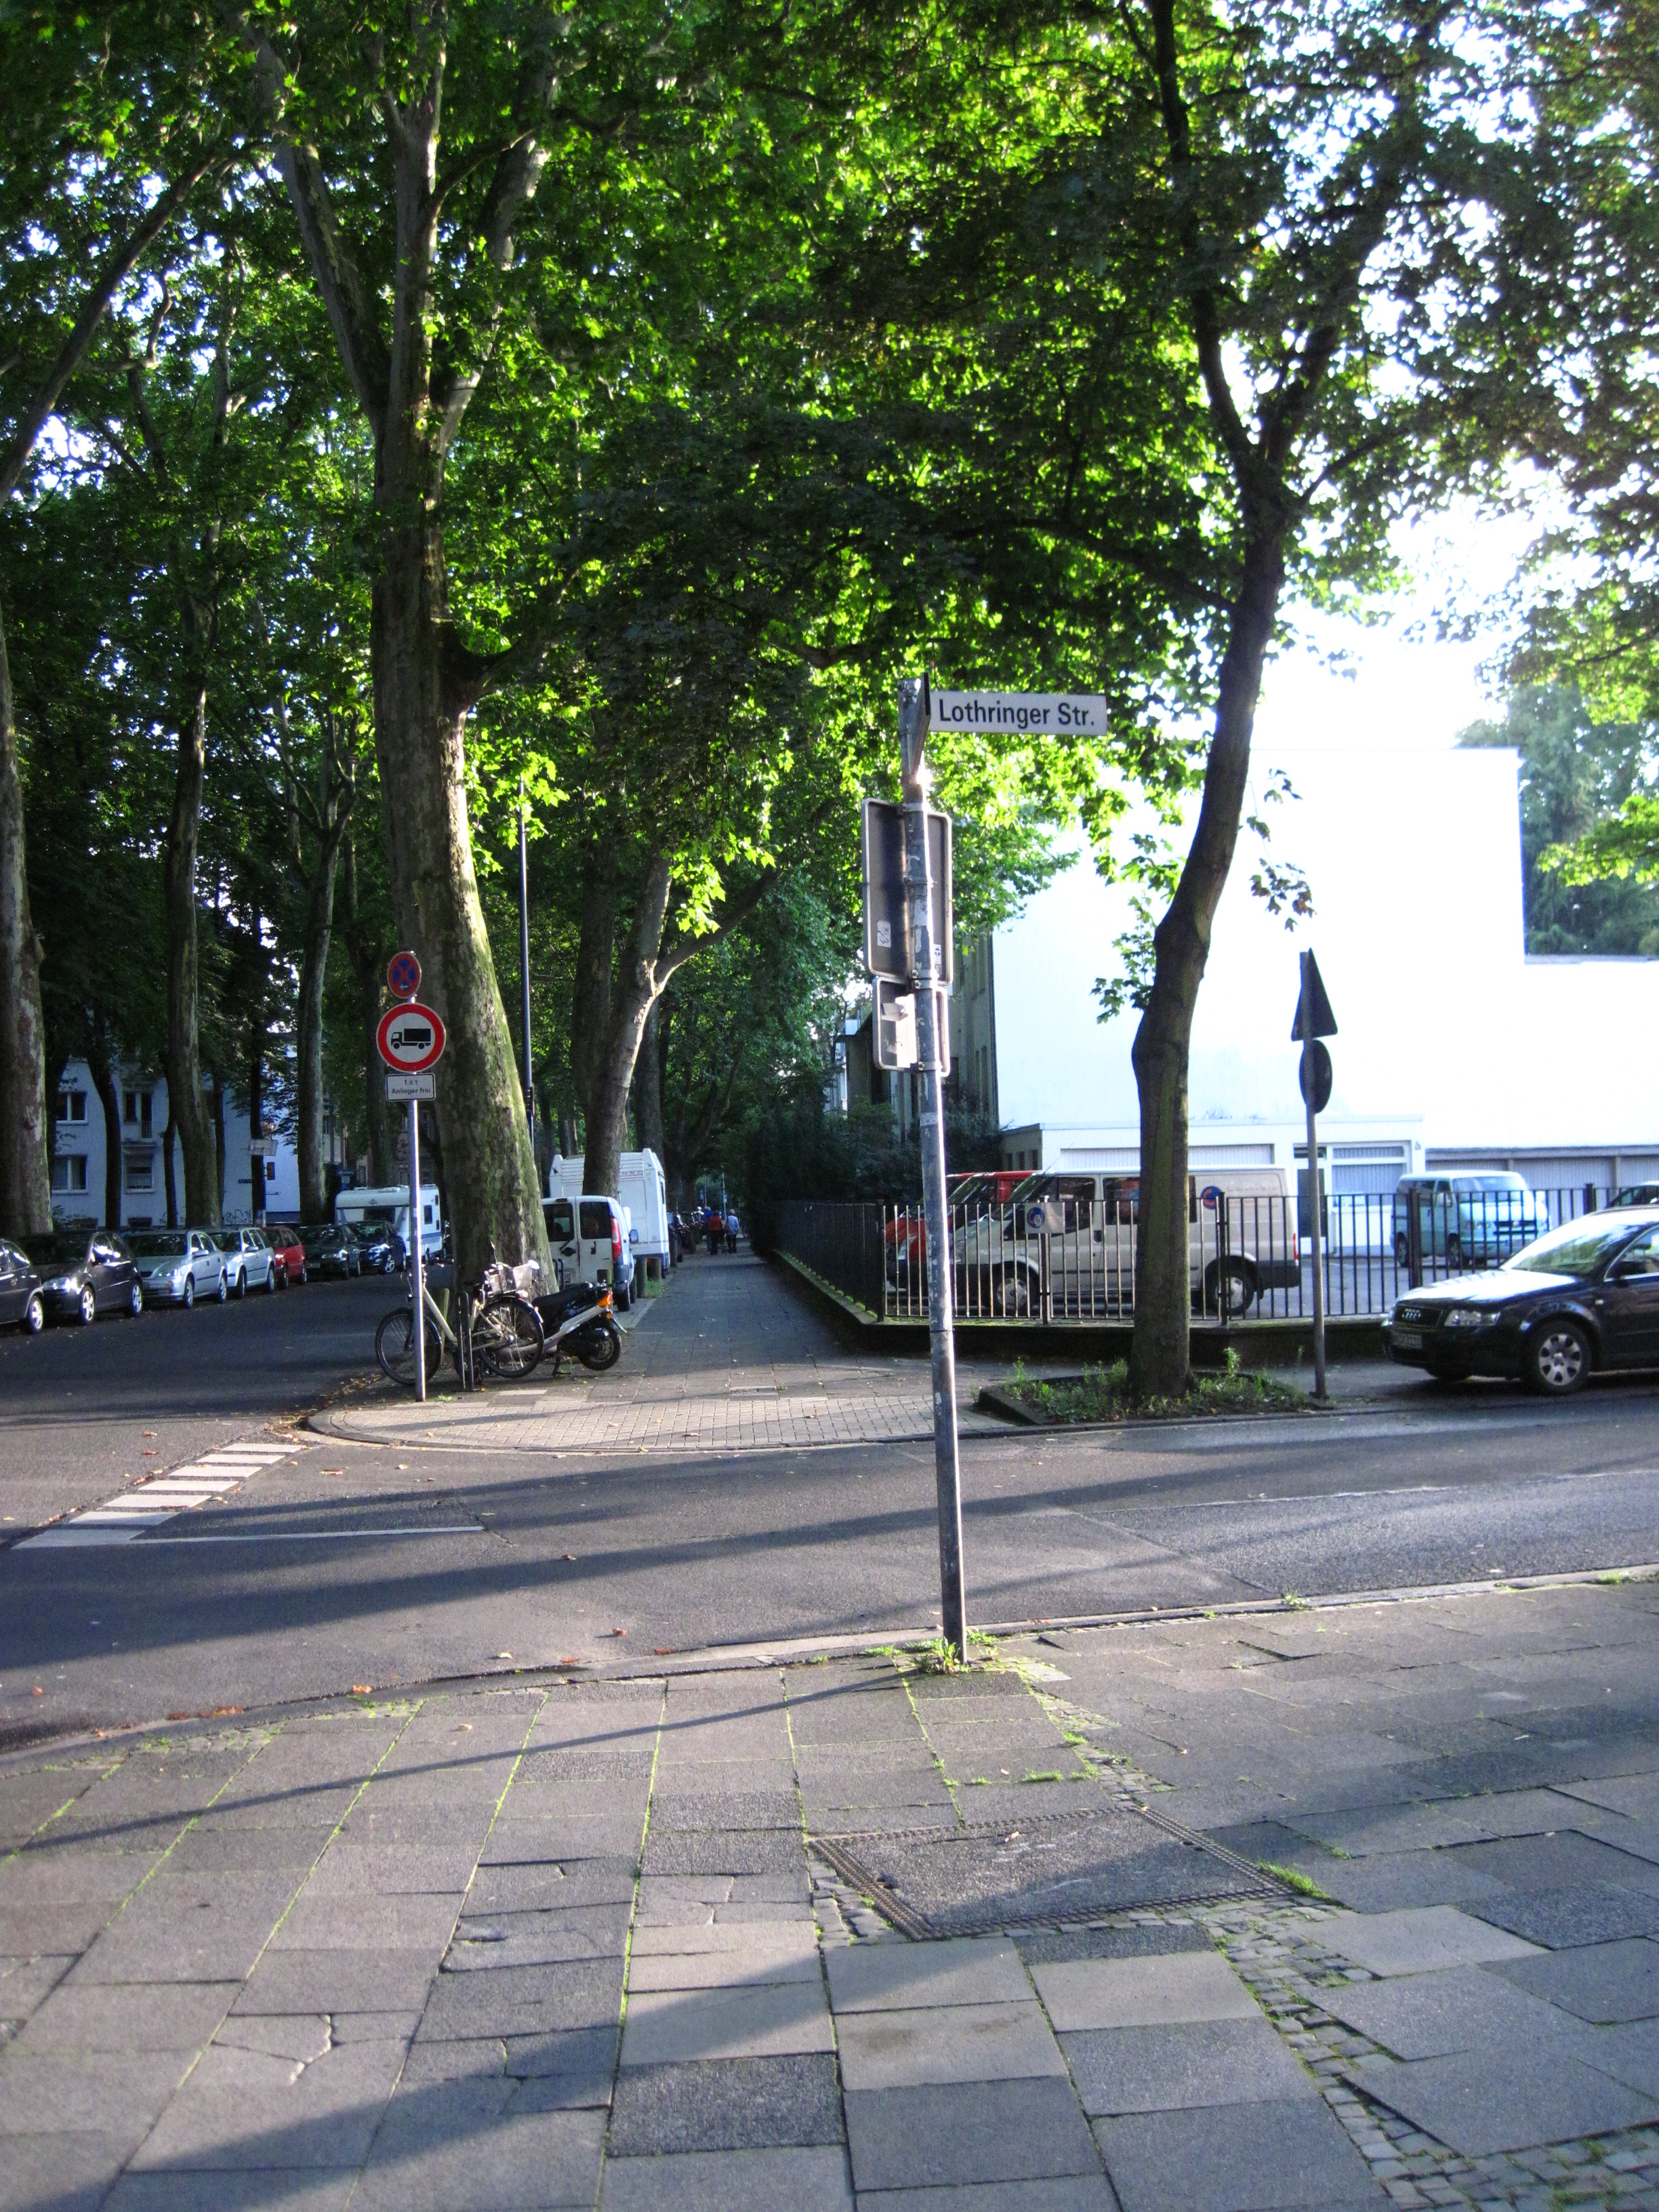 Lothringer str., Cologne, Germany